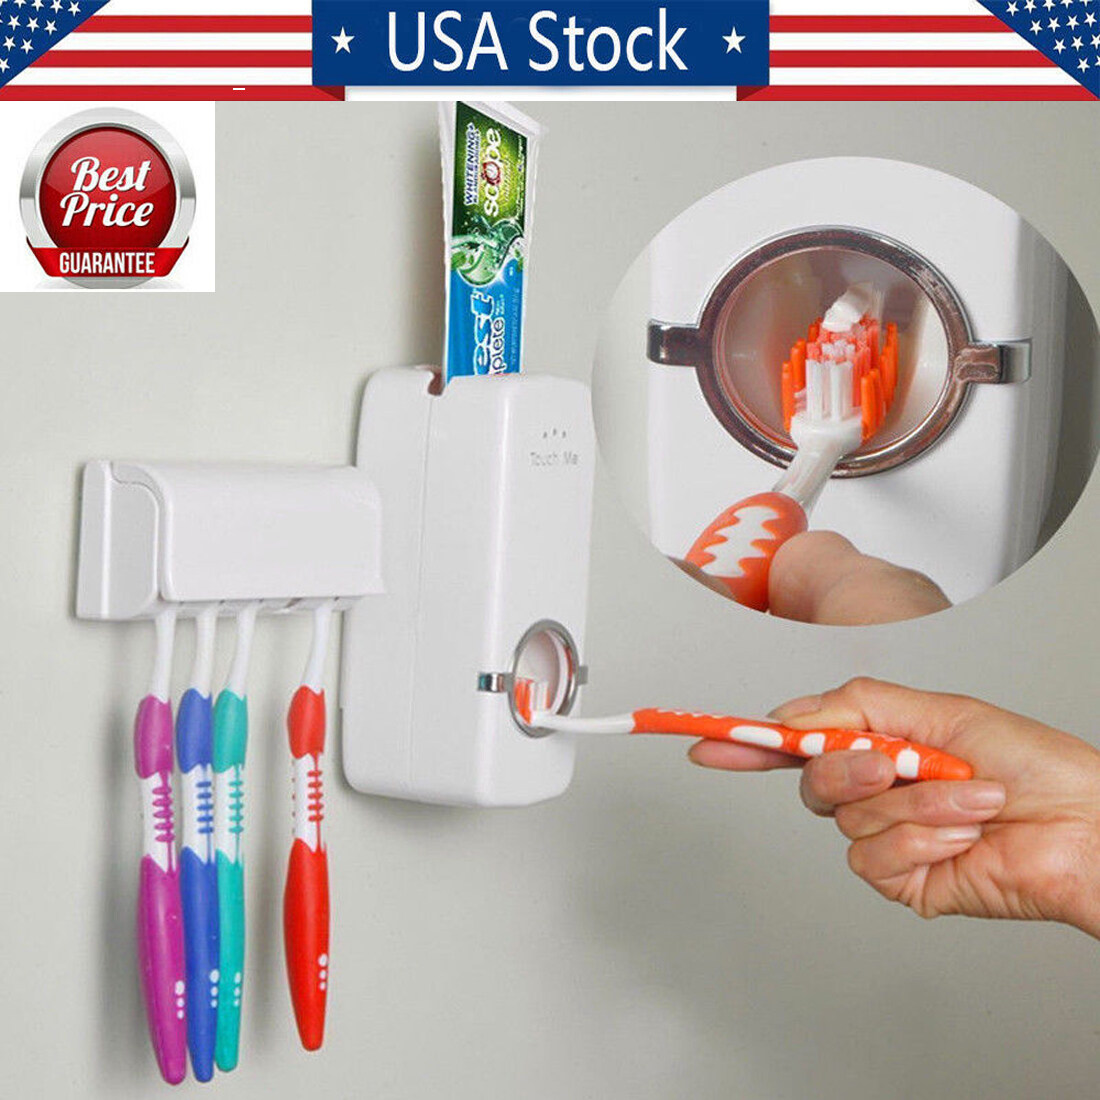 Auto Automatic Toothpaste Dispenser 5 Toothbrush Holder Set Wall Mount Stand US